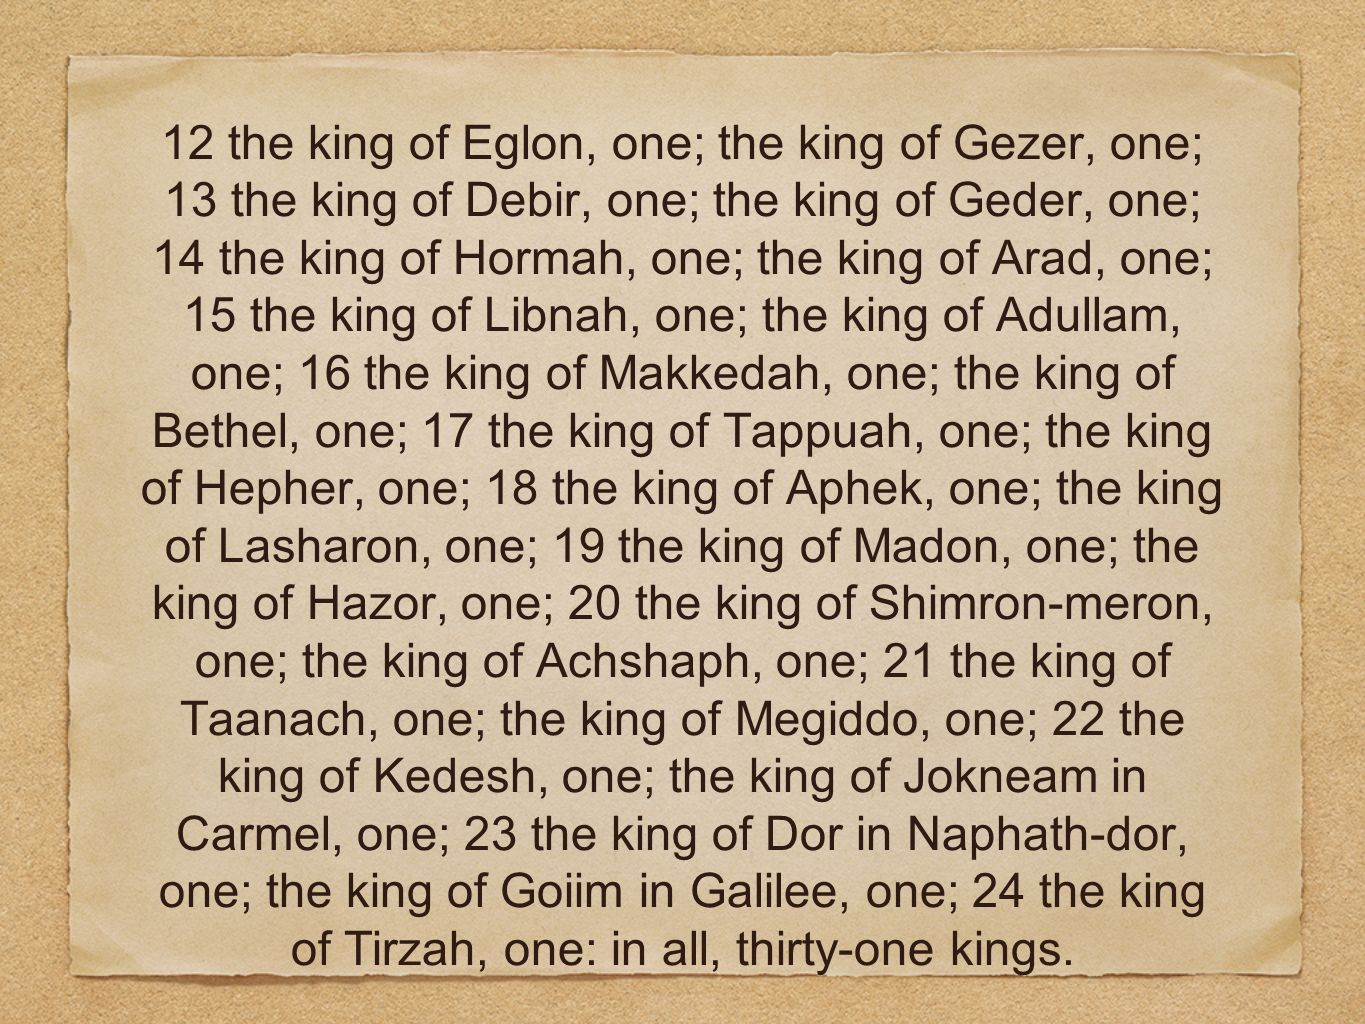 12 the king of Eglon, one; the king of Gezer, one; 13 the king of Debir, one; the king of Geder, one; 14 the king of Hormah, one; the king of Arad, one; 15 the king of Libnah, one; the king of Adullam, one; 16 the king of Makkedah, one; the king of Bethel, one; 17 the king of Tappuah, one; the king of Hepher, one; 18 the king of Aphek, one; the king of Lasharon, one; 19 the king of Madon, one; the king of Hazor, one; 20 the king of Shimron-meron, one; the king of Achshaph, one; 21 the king of Taanach, one; the king of Megiddo, one; 22 the king of Kedesh, one; the king of Jokneam in Carmel, one; 23 the king of Dor in Naphath-dor, one; the king of Goiim in Galilee, one; 24 the king of Tirzah, one: in all, thirty-one kings.